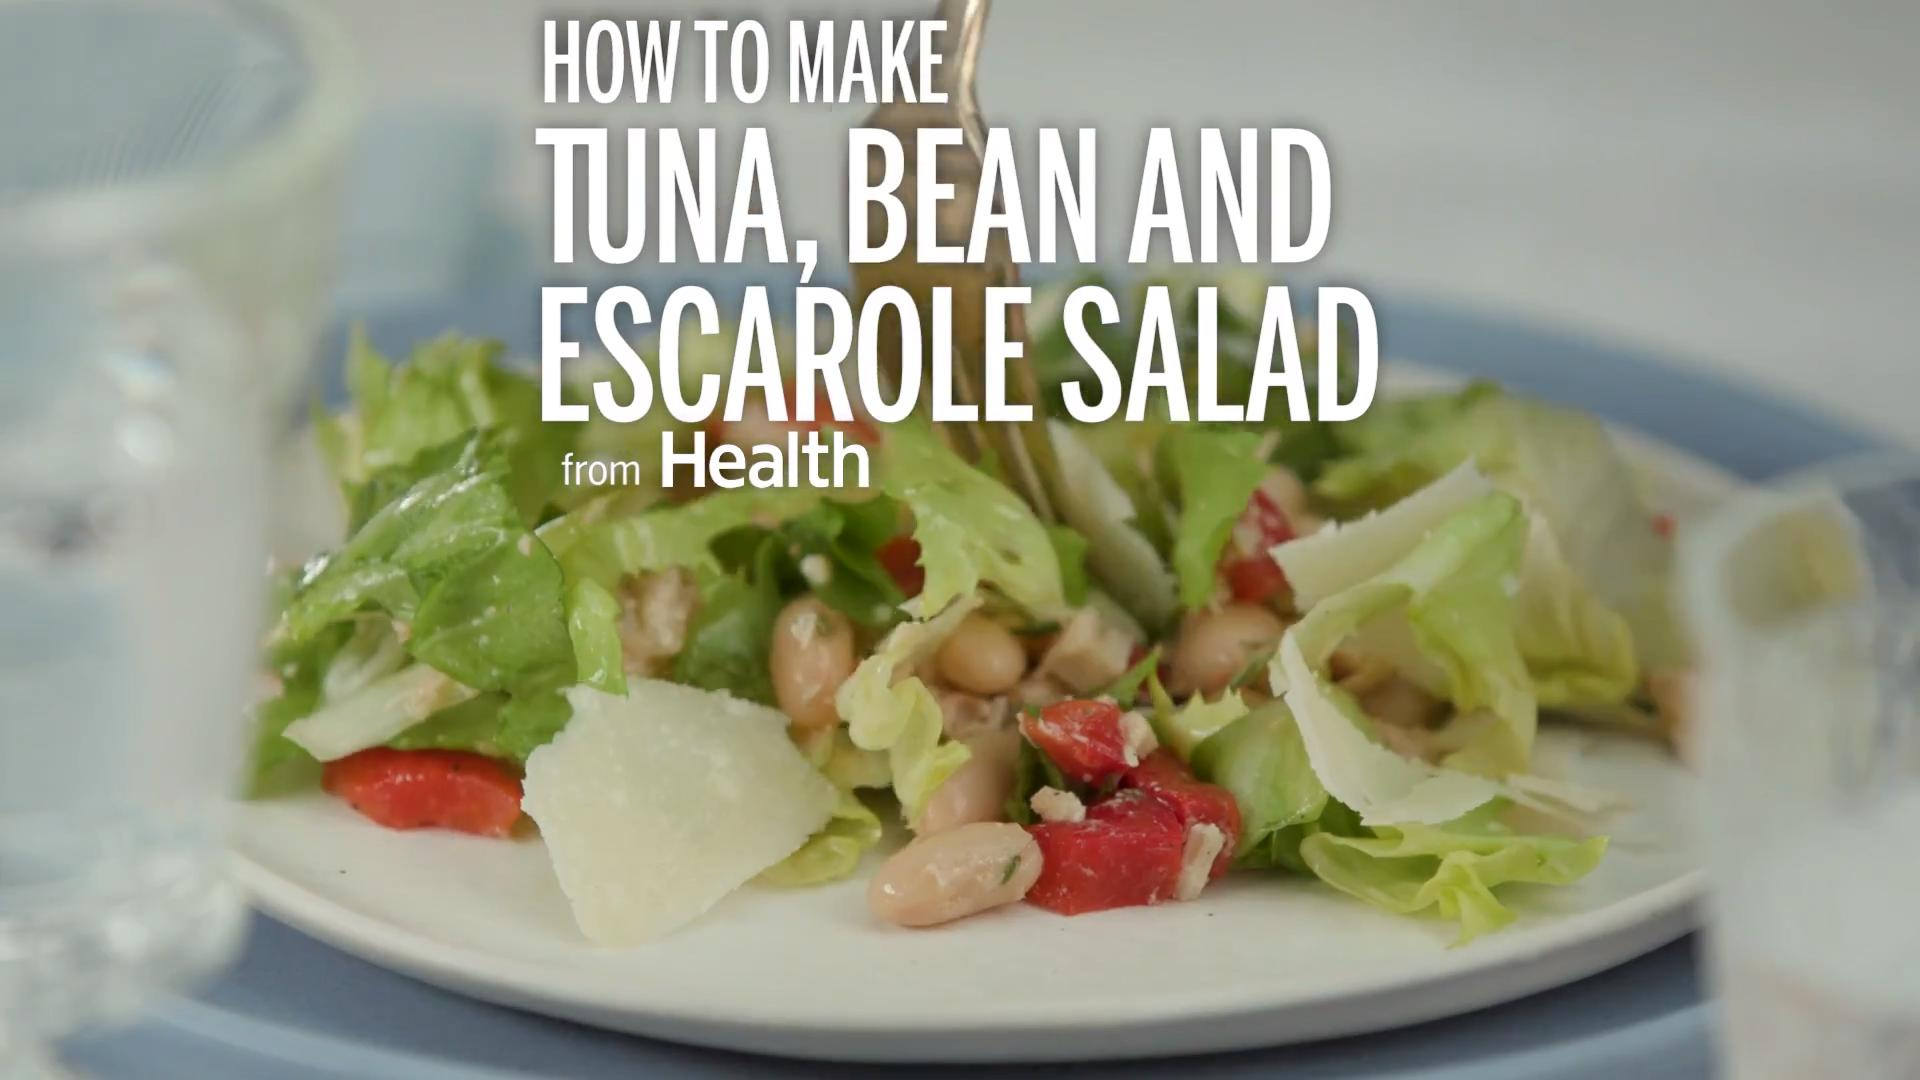 Tuna, Bean, and Escarole Salad